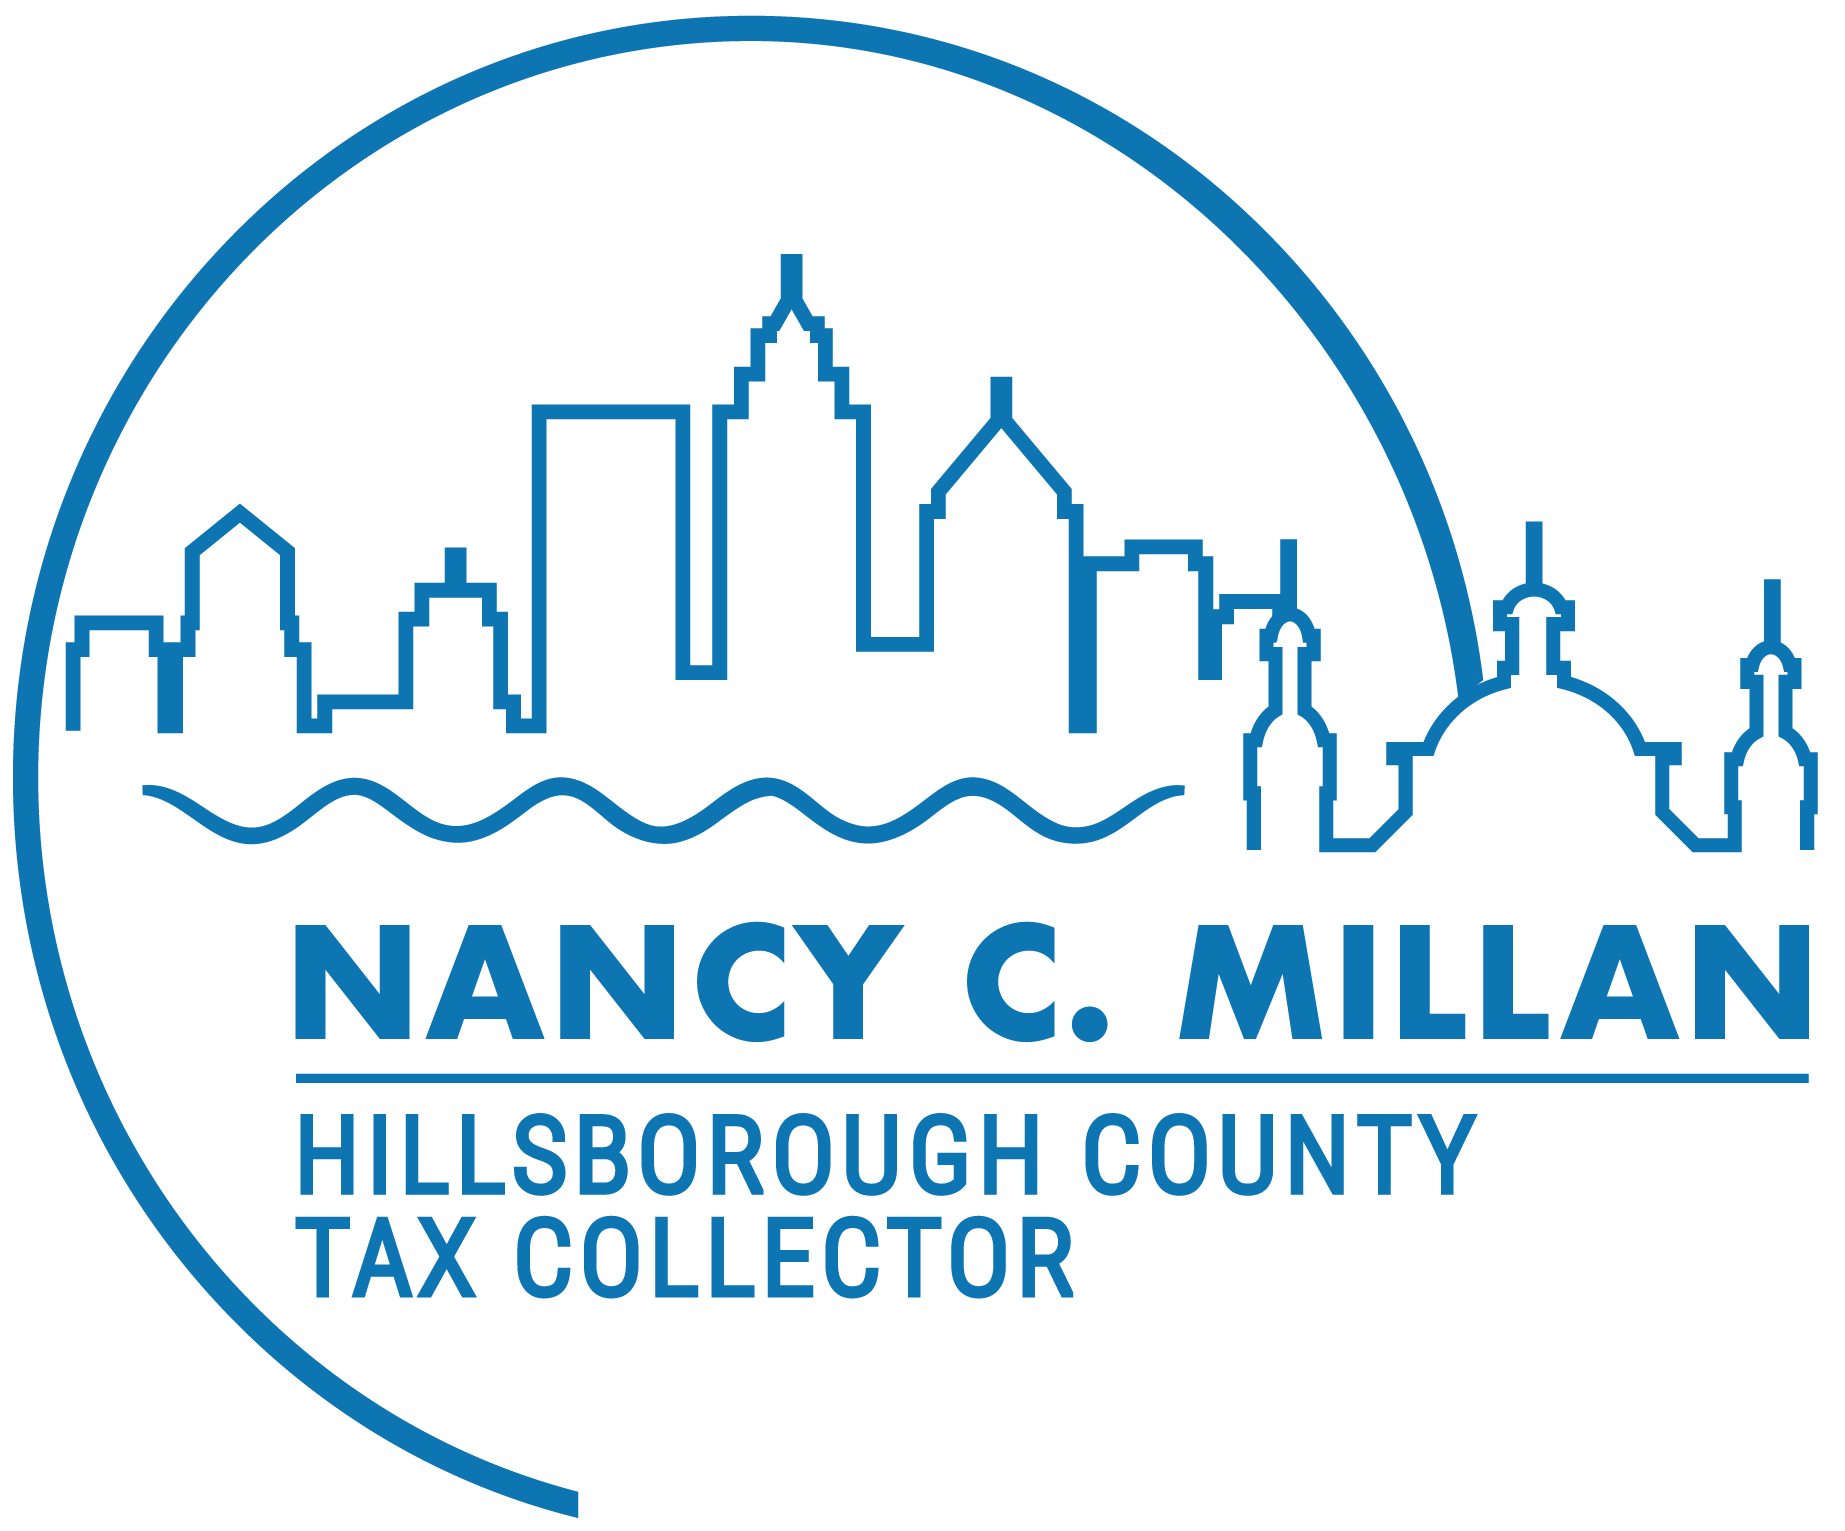 Nancy C. MillanHillsborough County Tax Collector